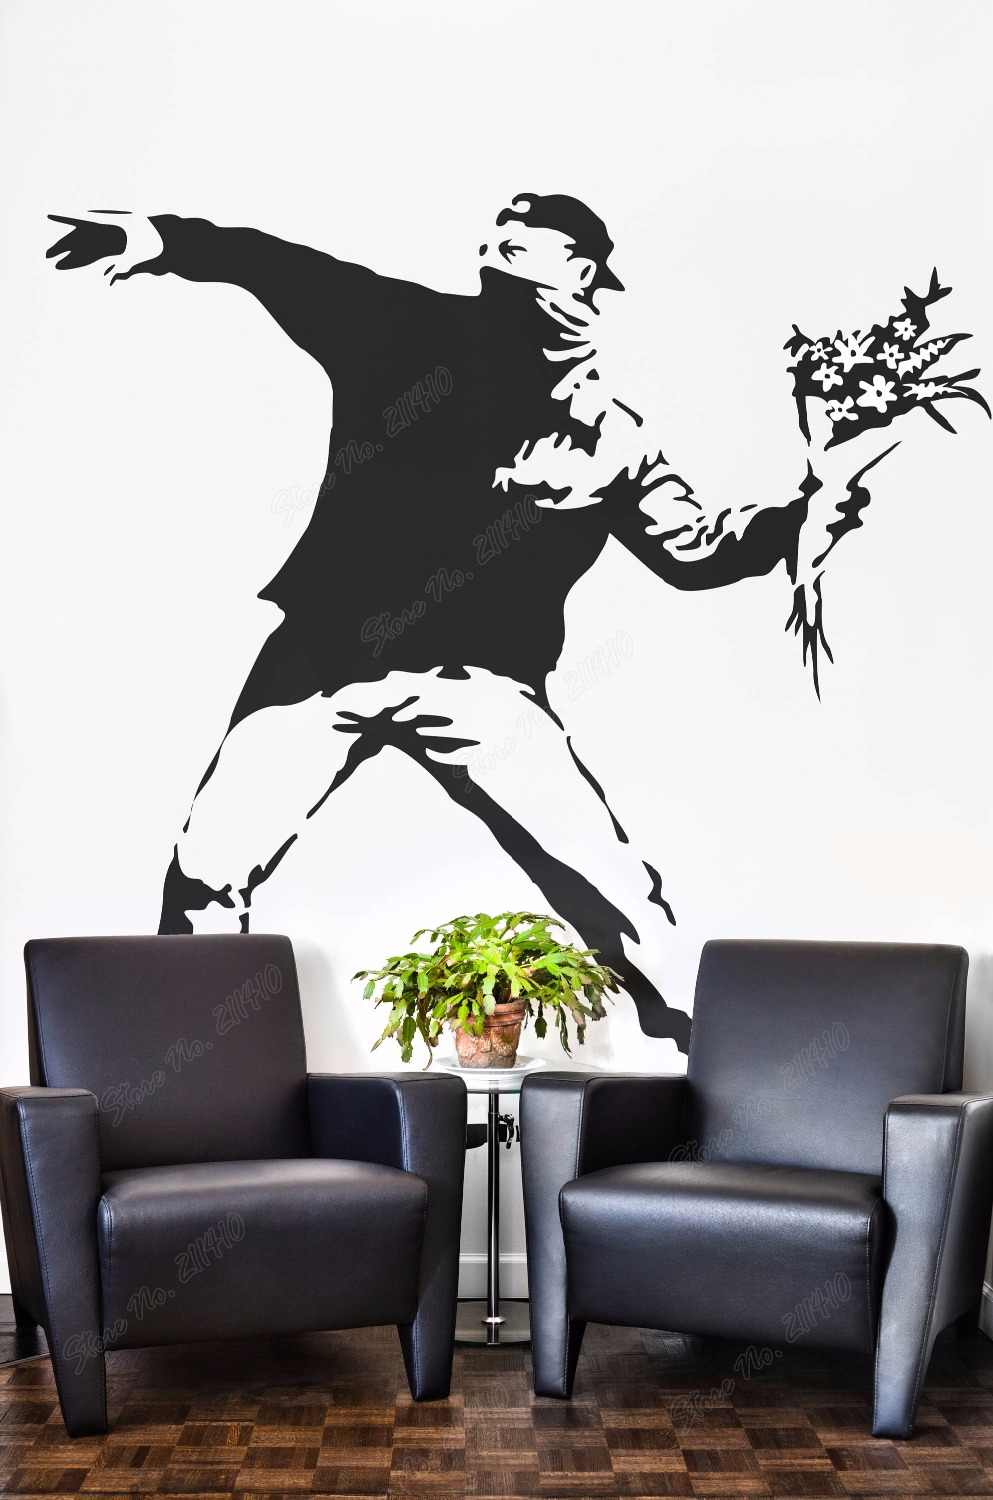 Banksy The Flower Protester Wall Decal Sticker Banksy Style Wall Decal Bedroom Decor Removable Vinyl Art Wall Sticker B139